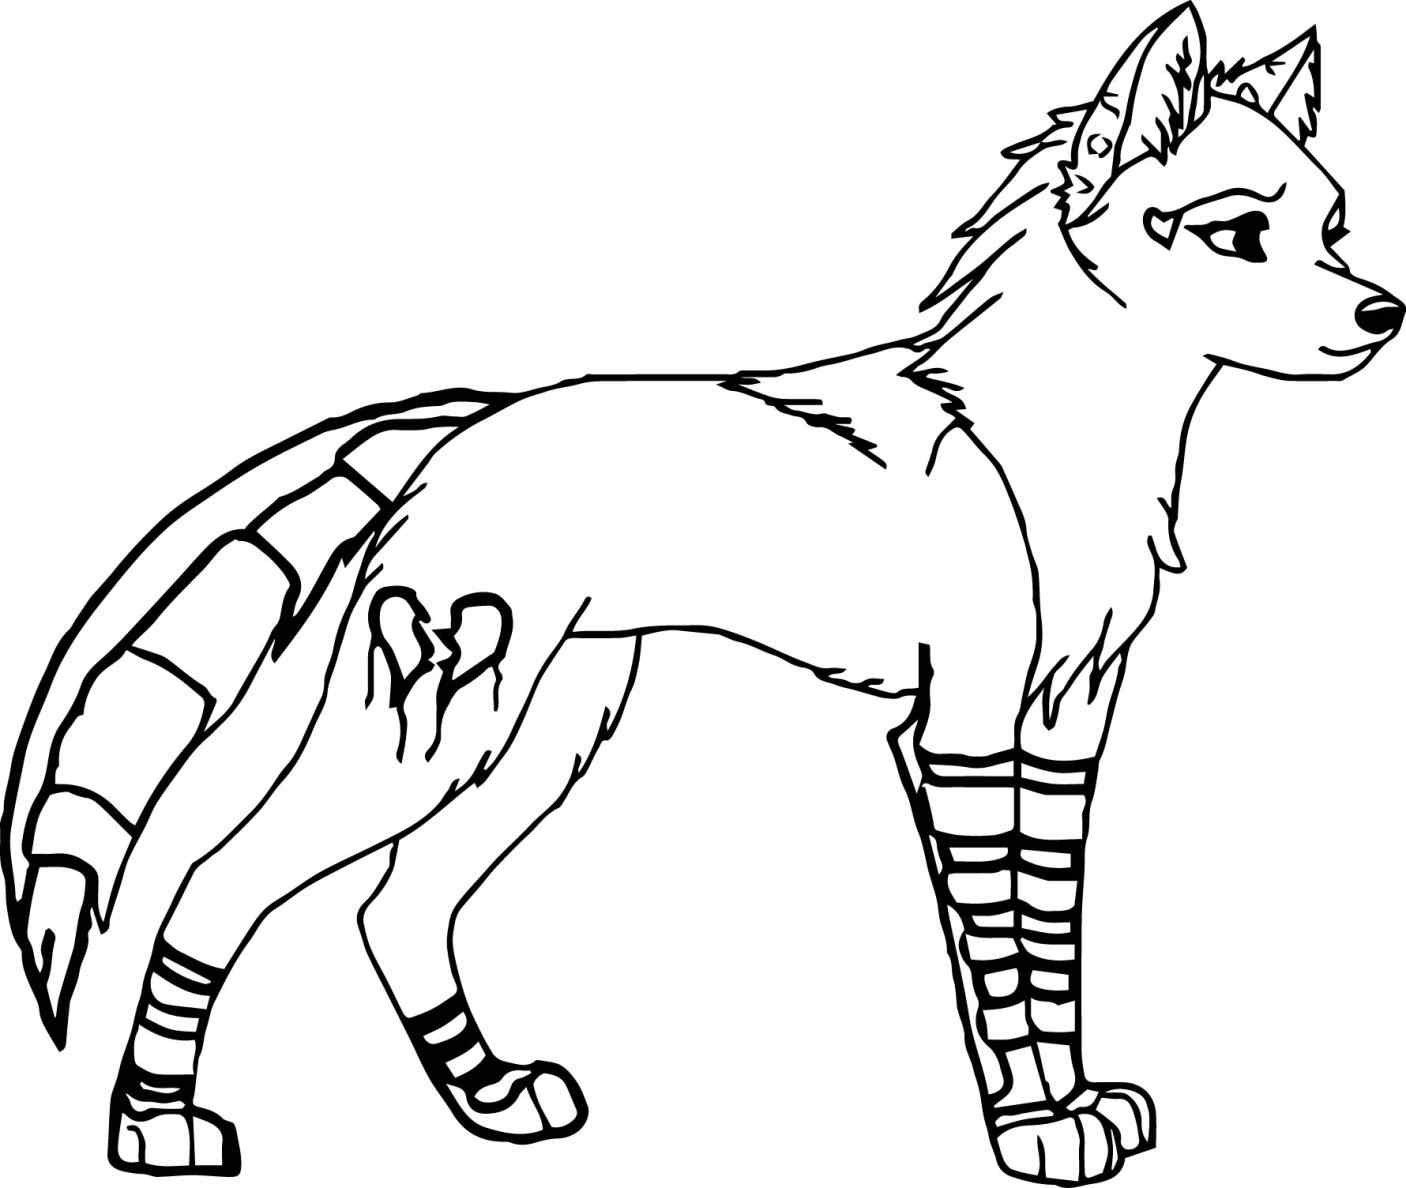 1406x1188 Realistic Wolf Howling Coloring Pages Online Printable Beautiful